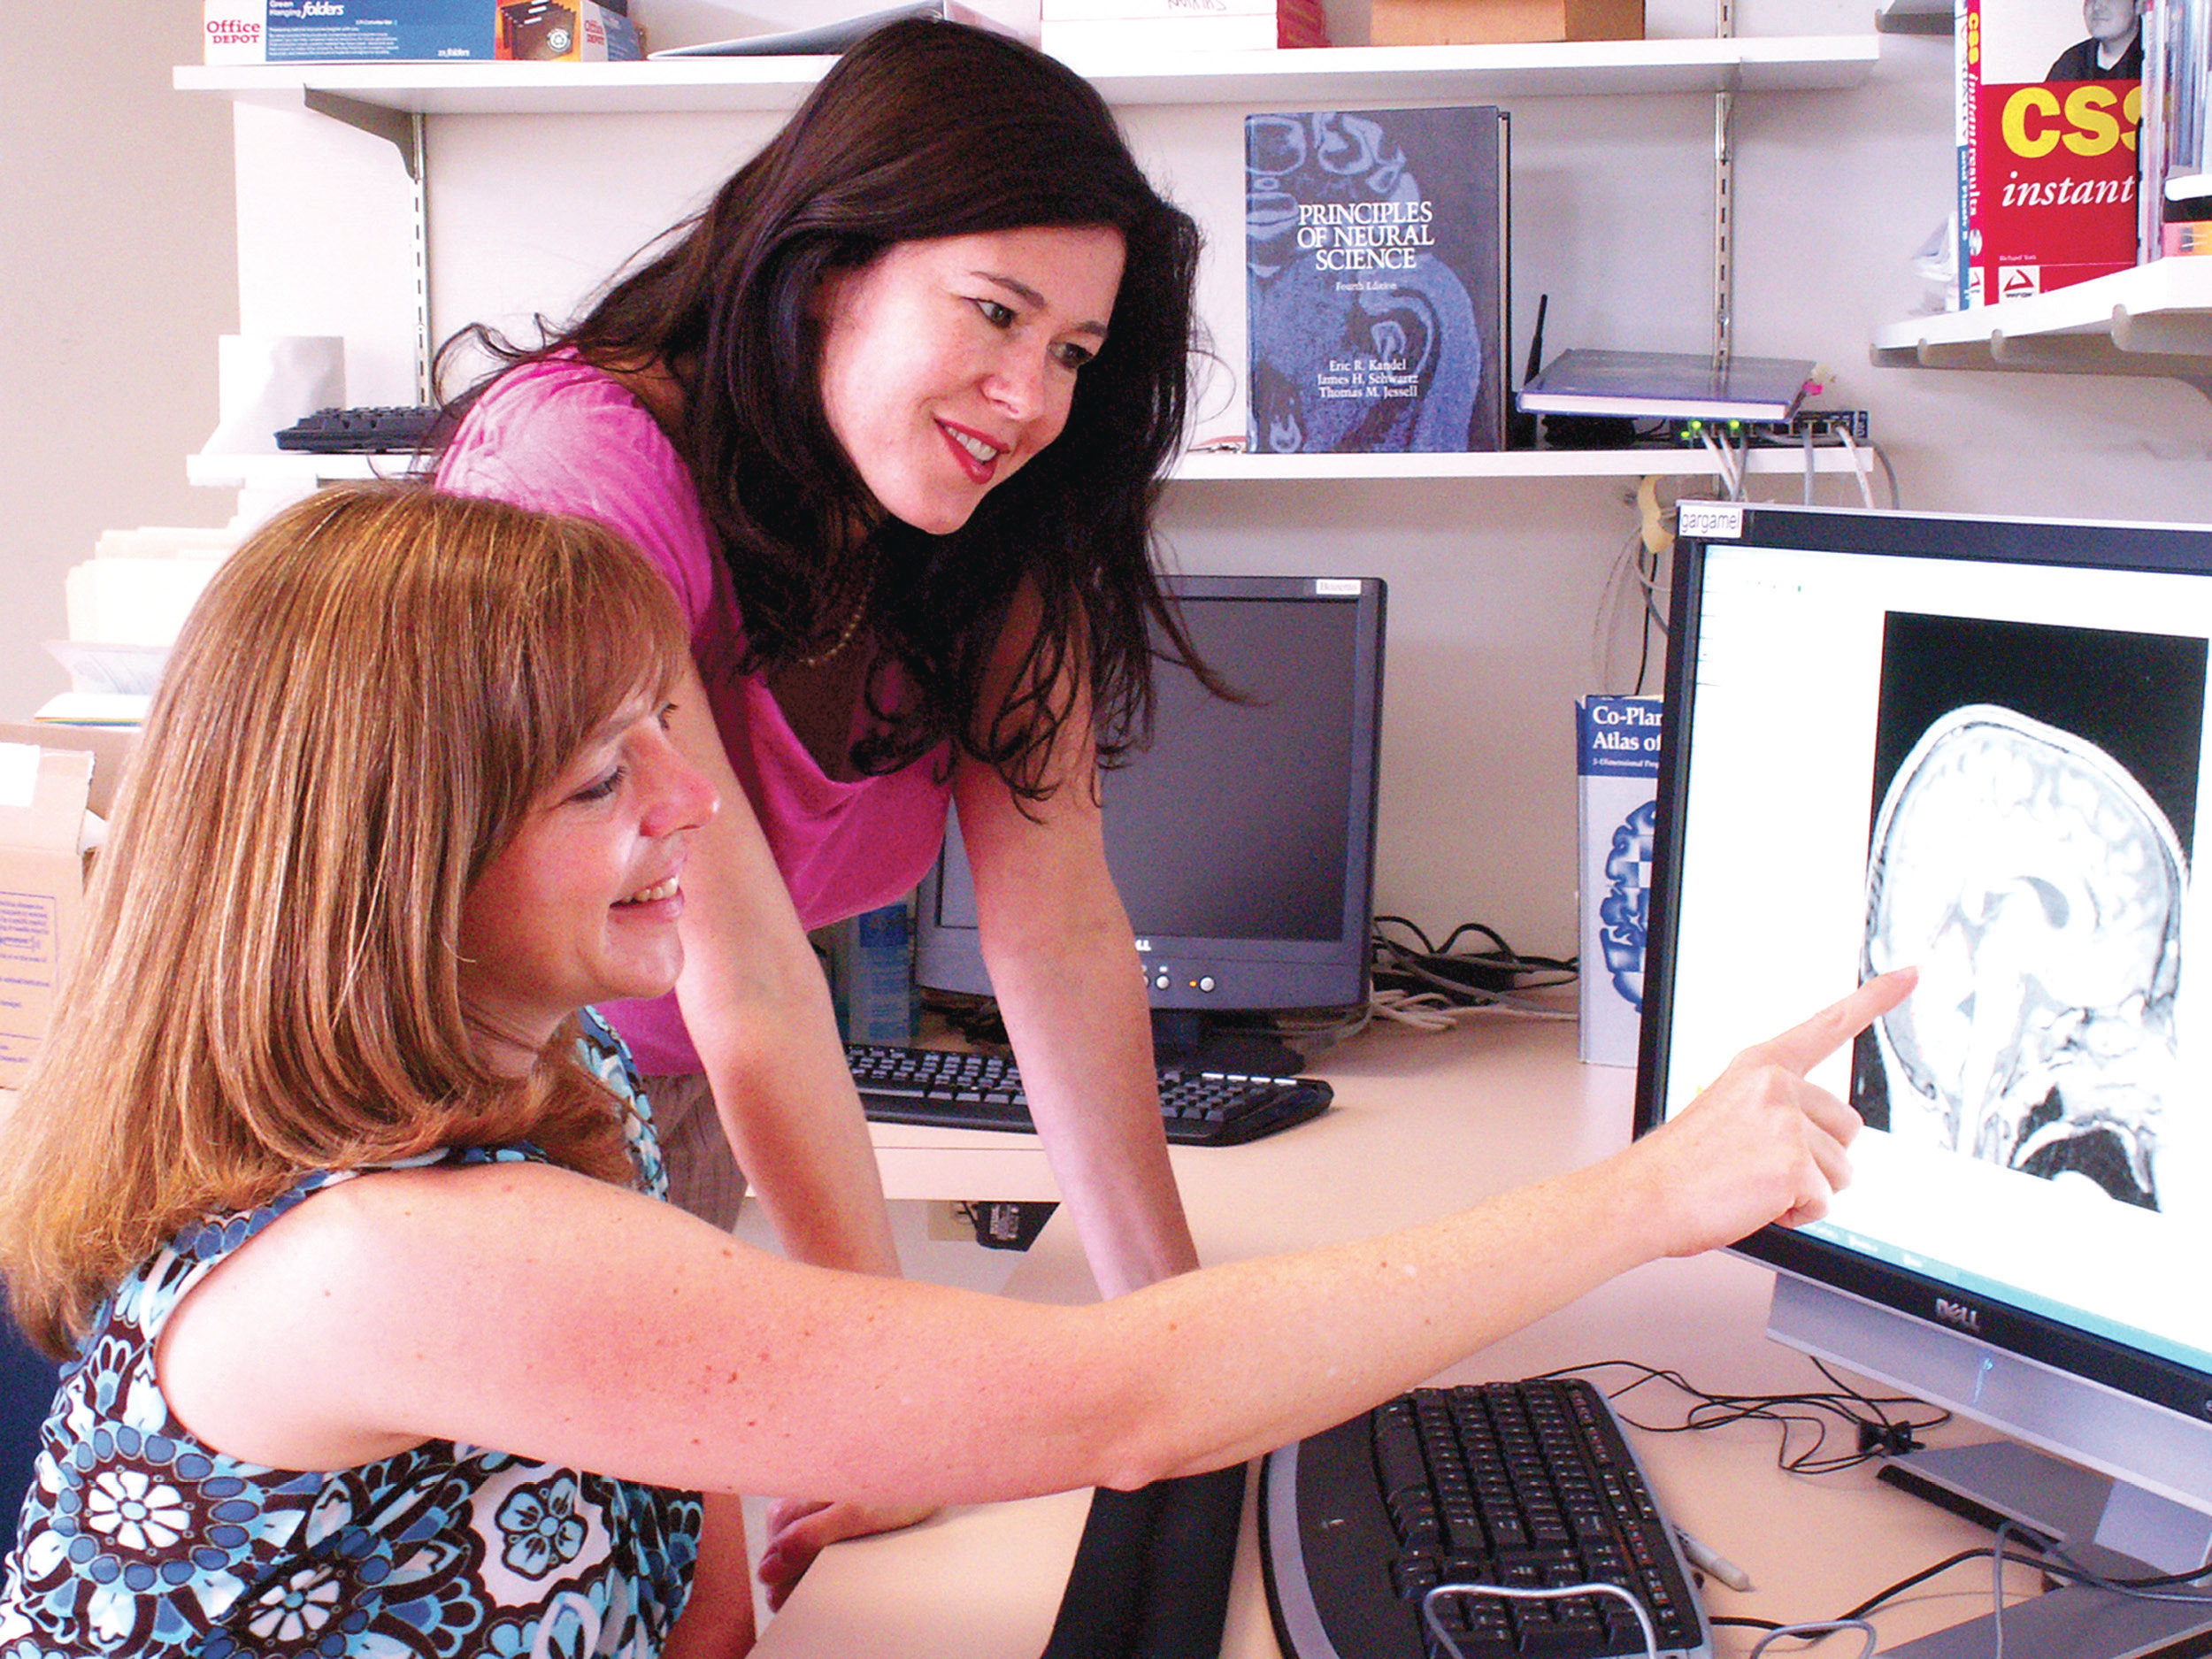 USING EYE MOVEMENTS TO DETECT AUTISM, PARKINSON'S